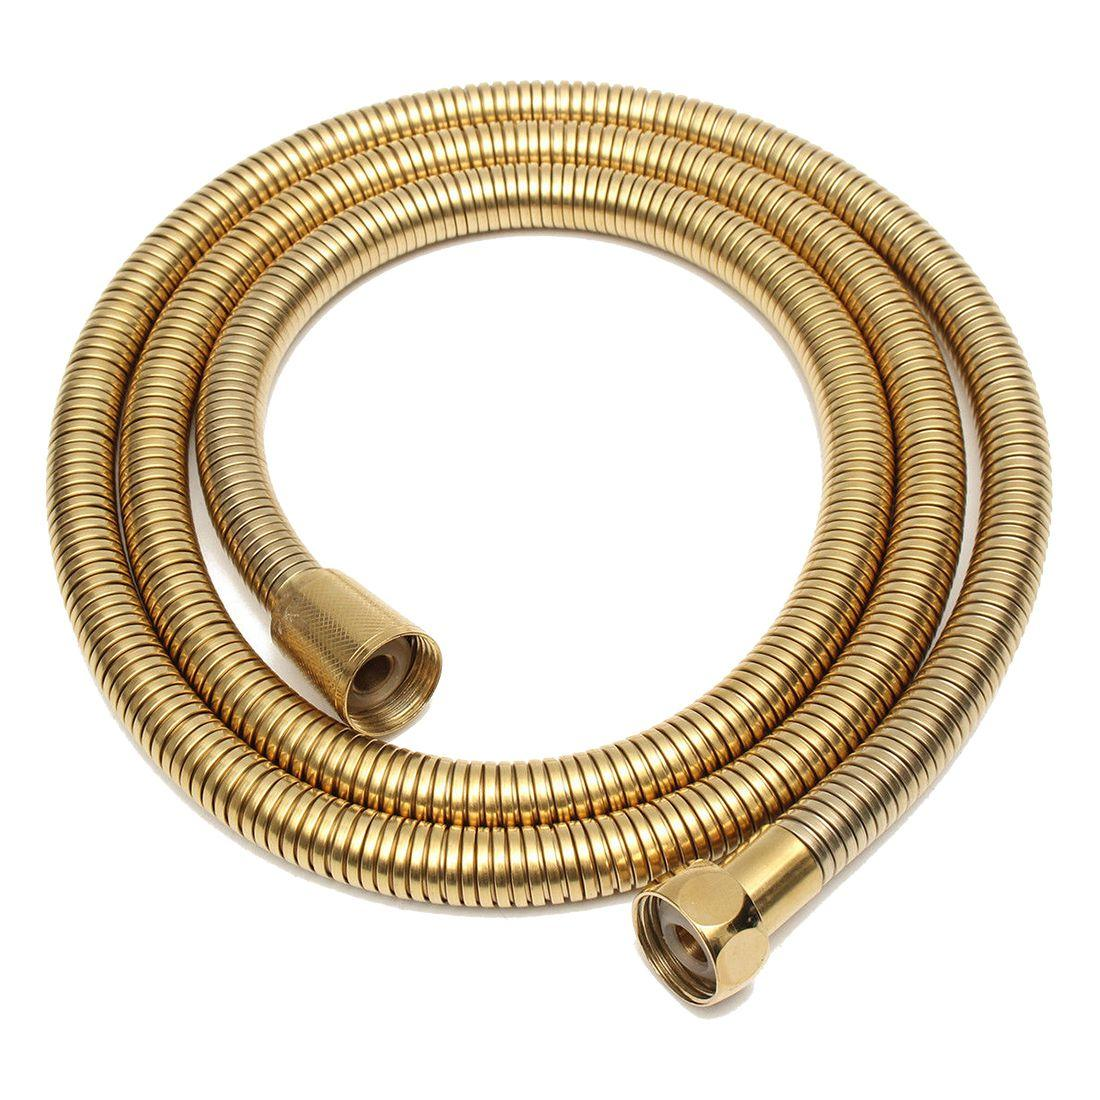 1.5m Gold Shower Head Hose Long Flexible Stainless Steel Bathroom Water Tube By Ertic.